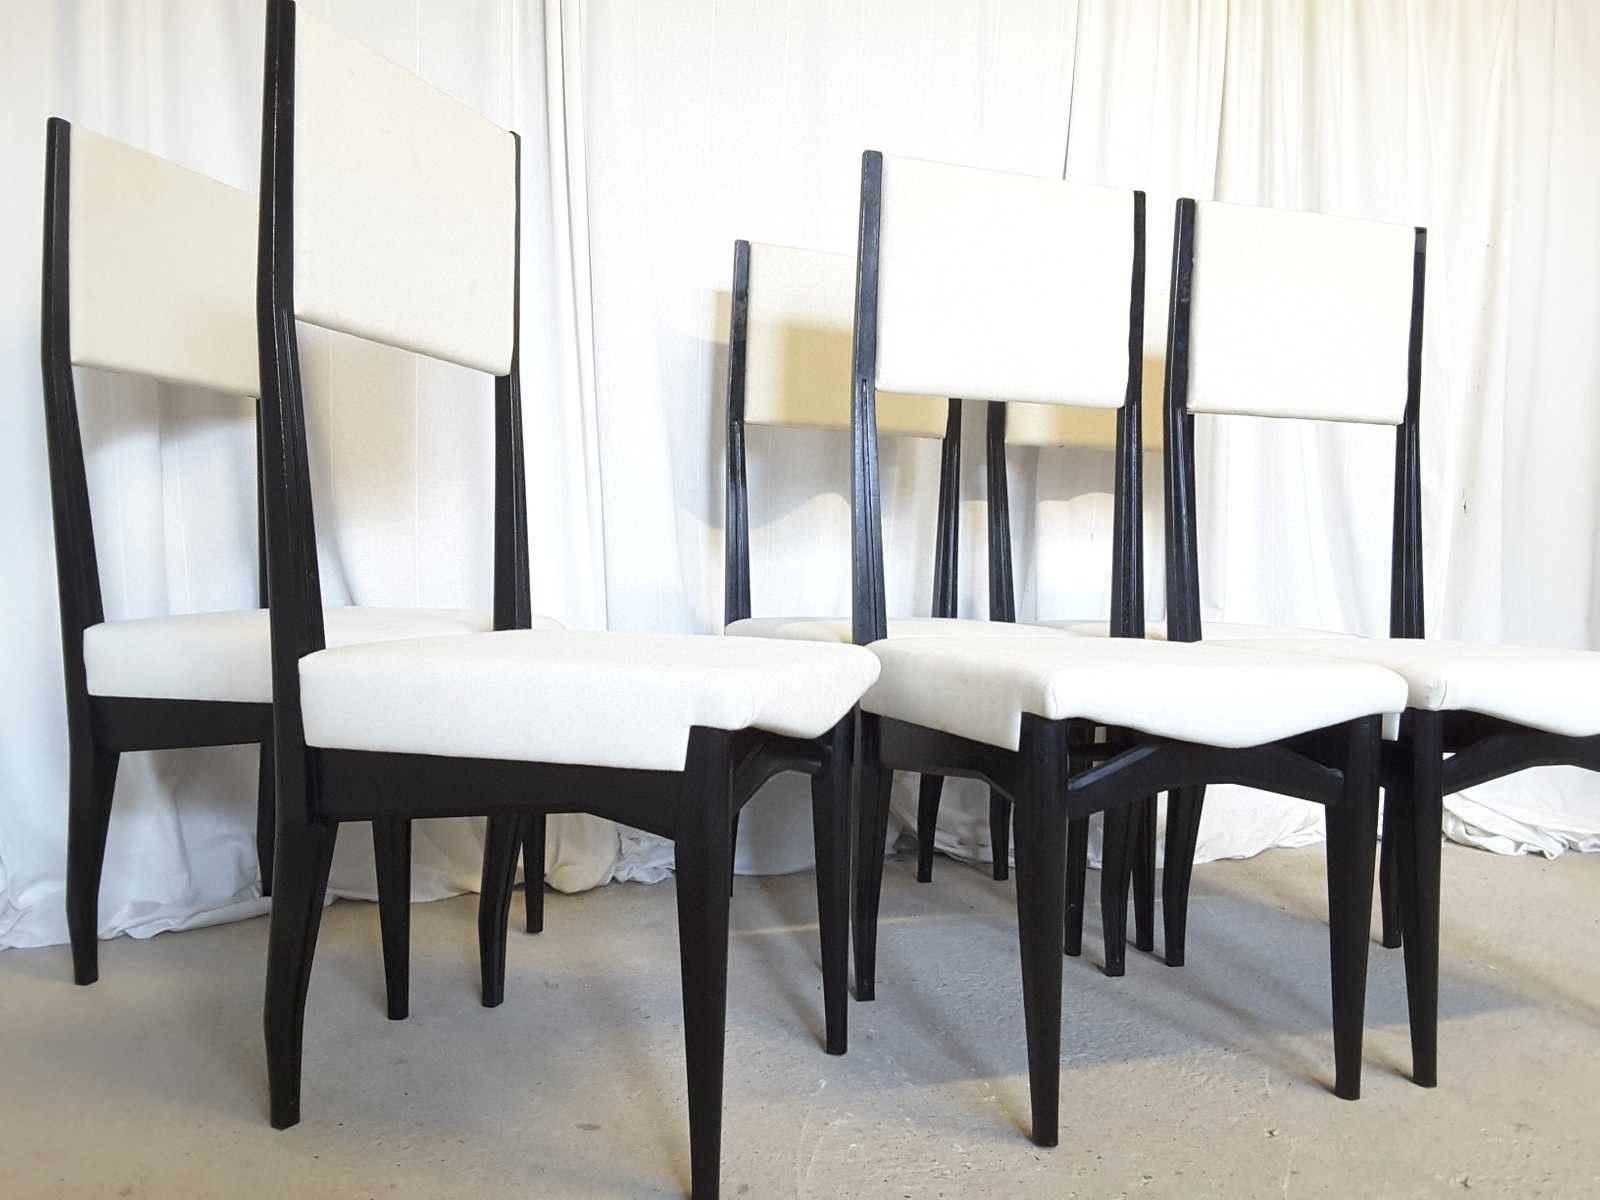 Italian High Back Dining Chairs 1950s Set of 6 for sale at Pamono